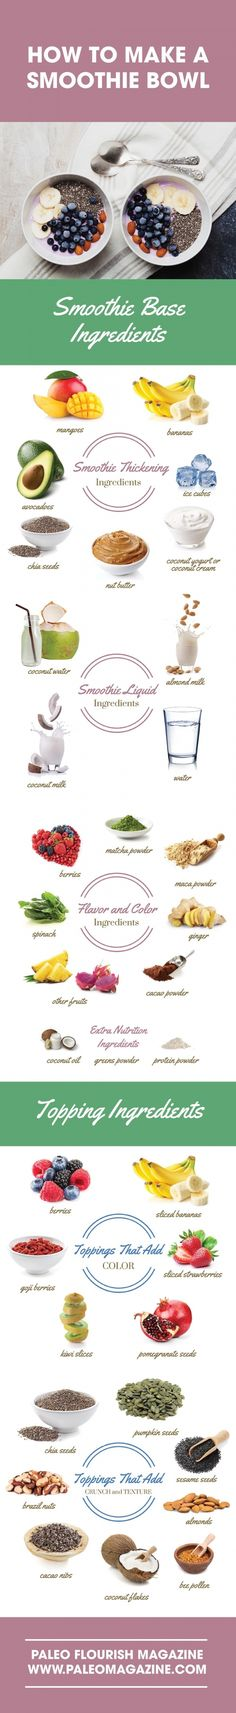 Way to make A Smoothie Bowl Infographic #Infographics